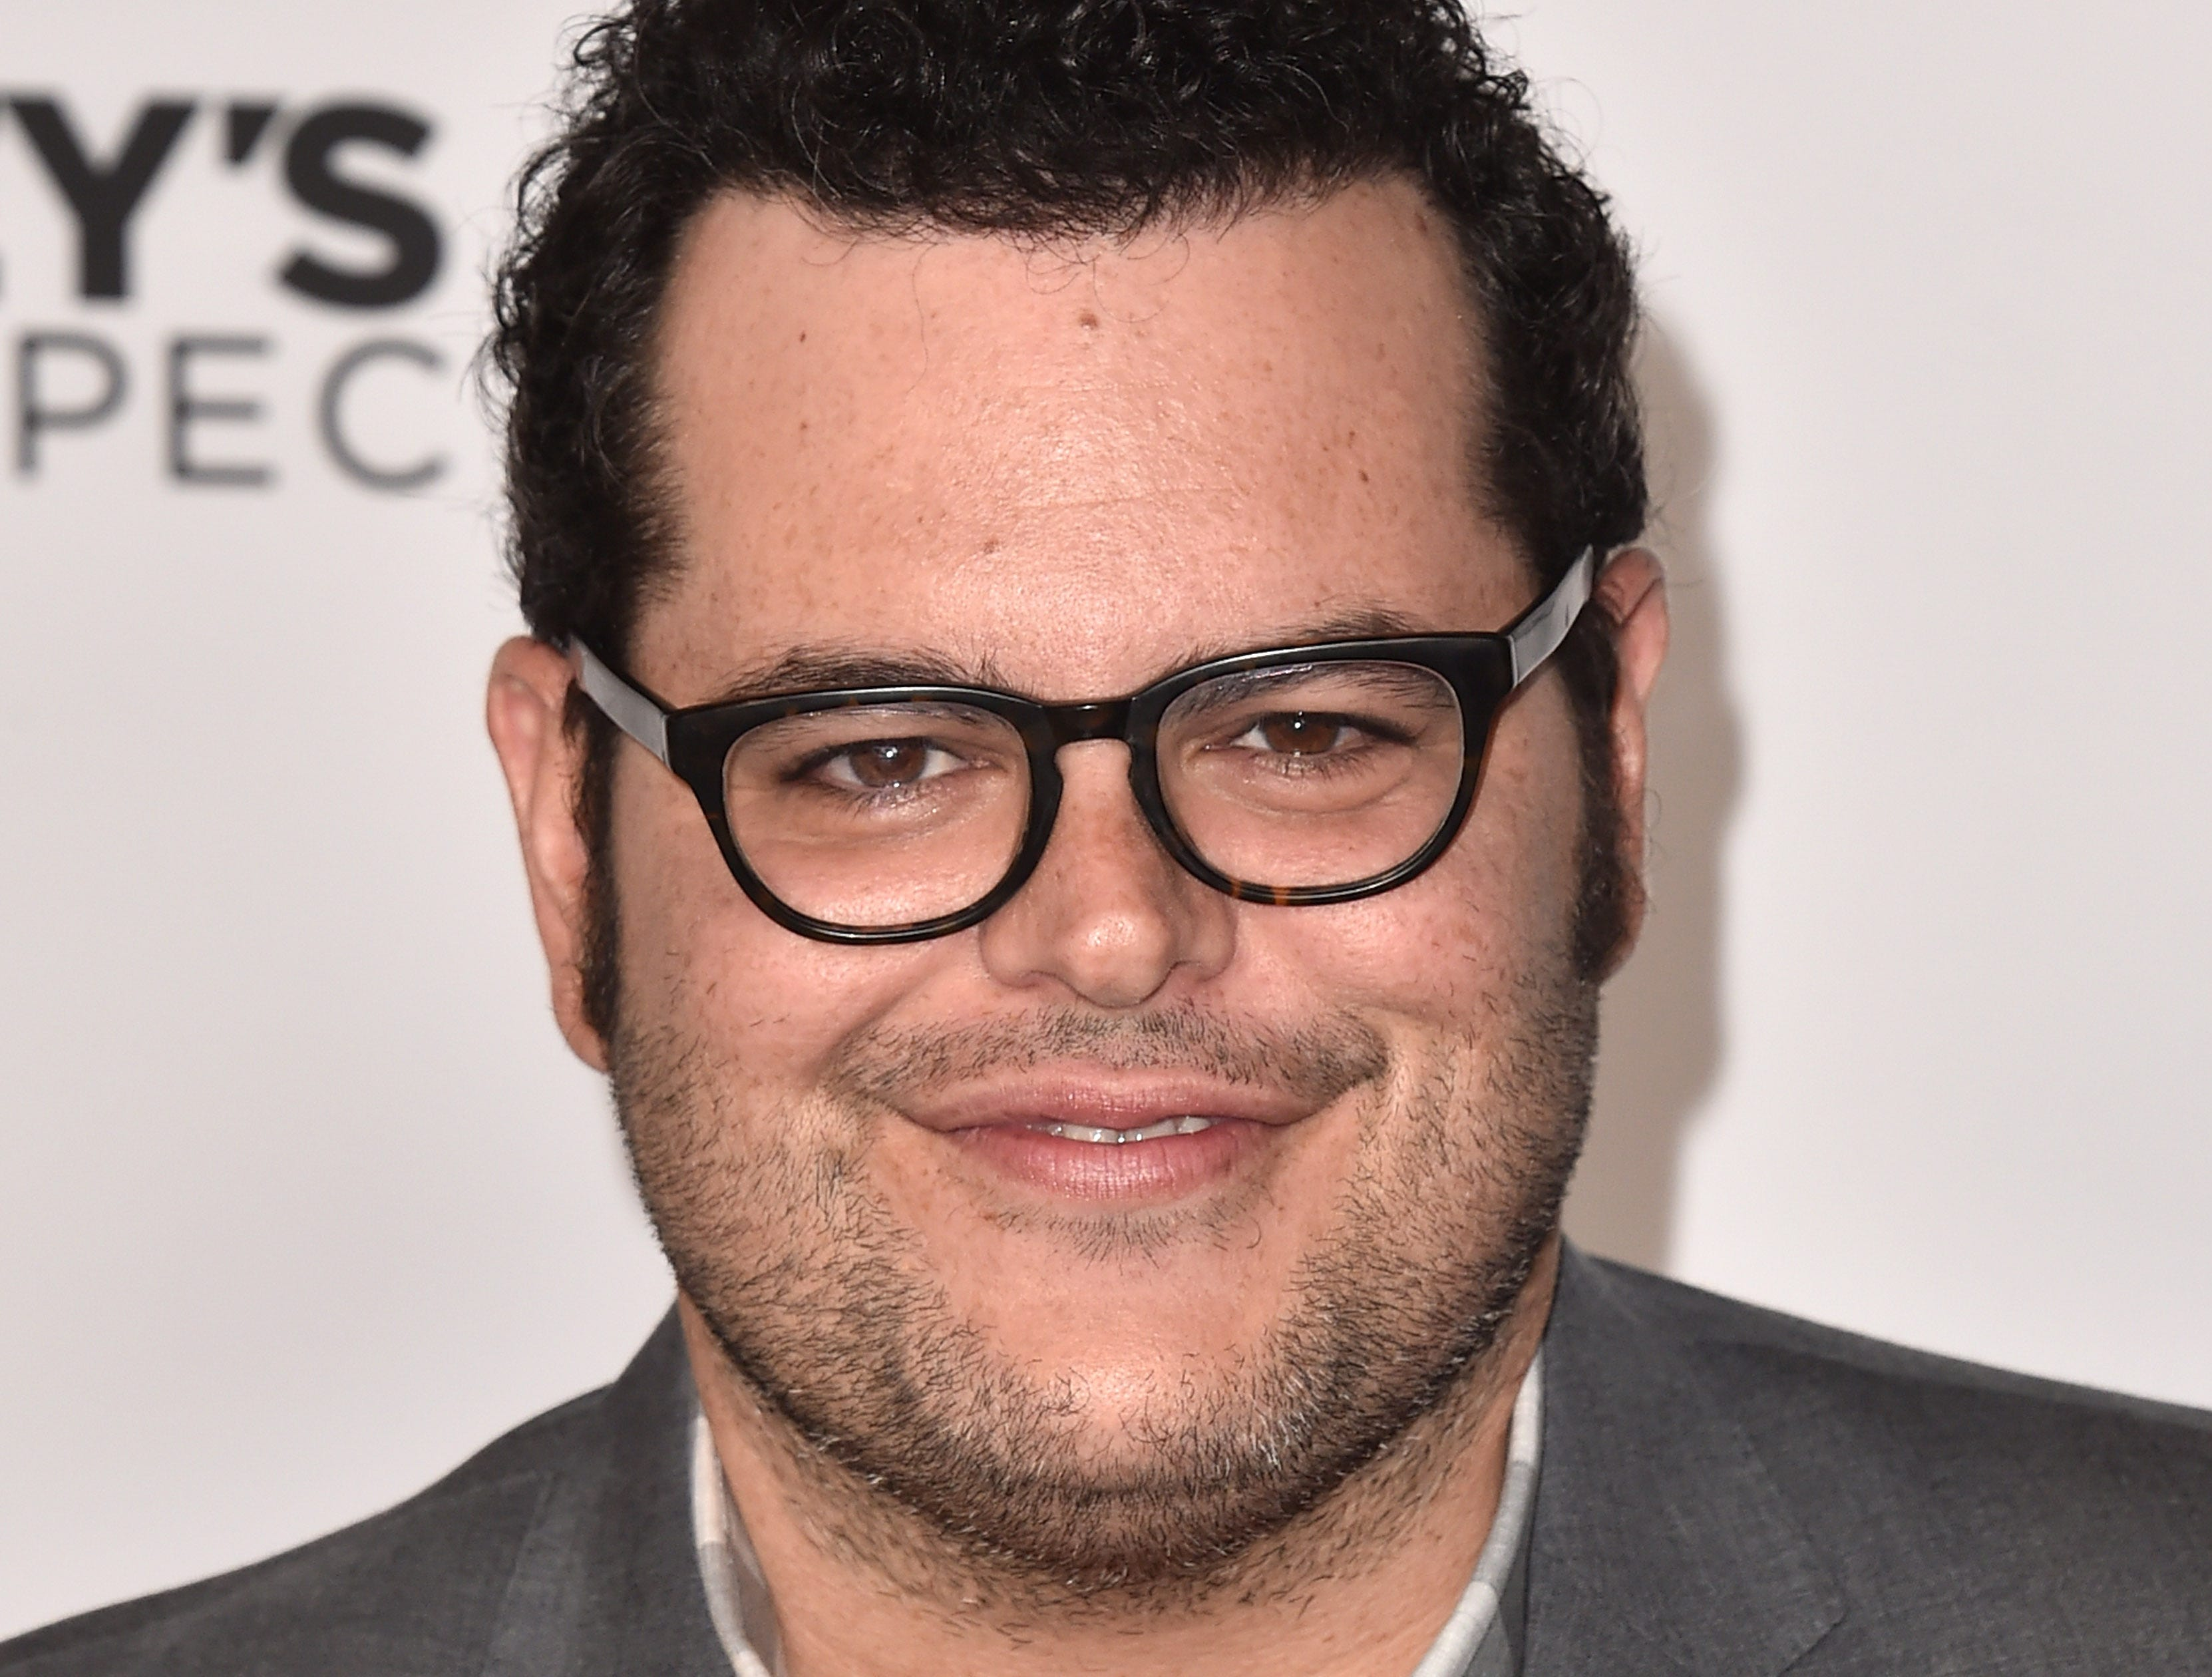 LOS ANGELES, CA - OCTOBER 06:  Josh Gad attends Mickey's 90th Spectacular at The Shrine Auditorium on October 6, 2018 in Los Angeles, California.  (Photo by Alberto E. Rodriguez/Getty Images) ORG XMIT: 775231319 ORIG FILE ID: 1046863912